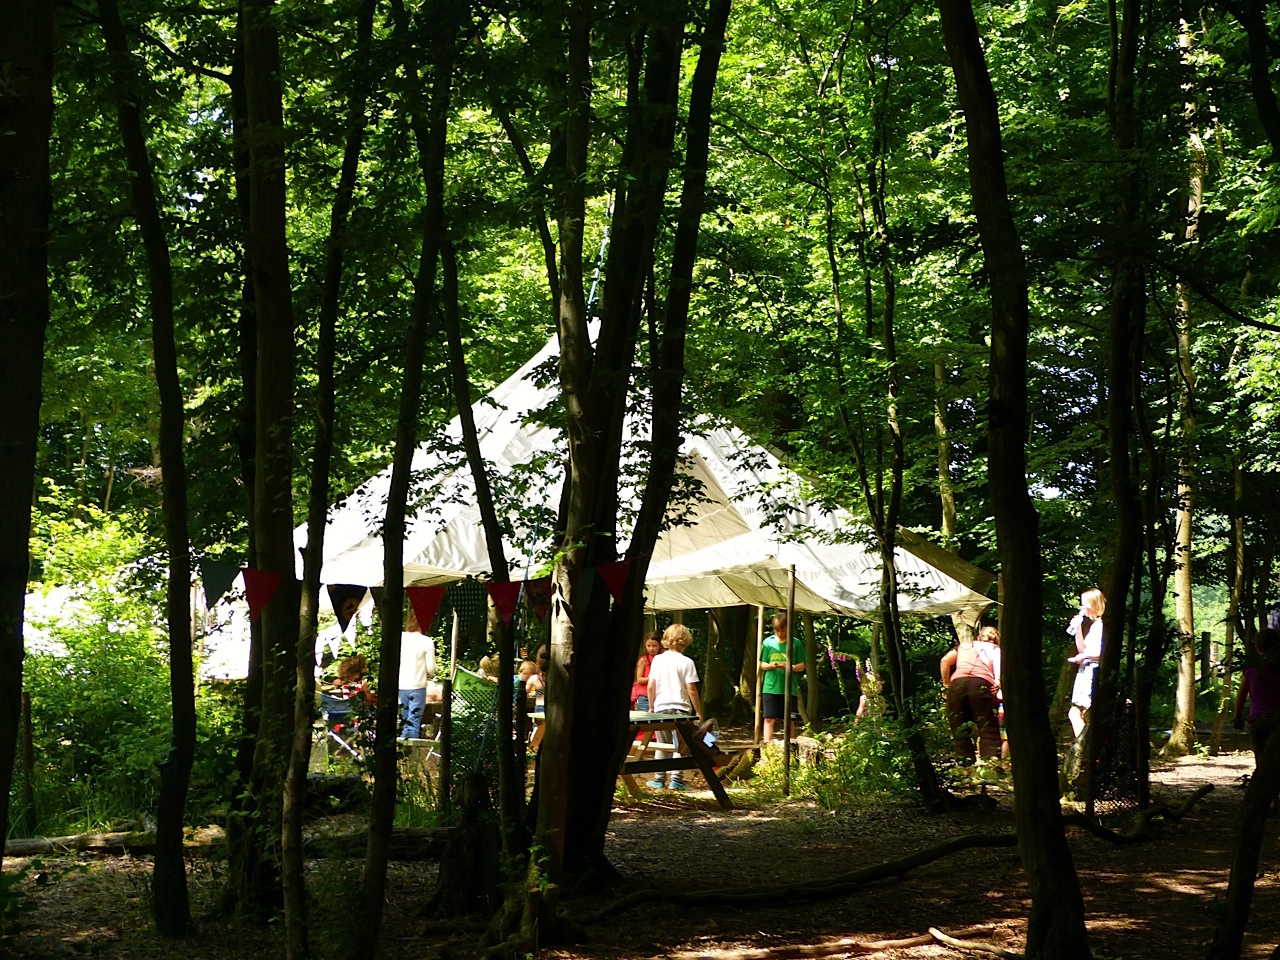 Eco Camp at Wild Boar Wood, best campsites near London, 2017